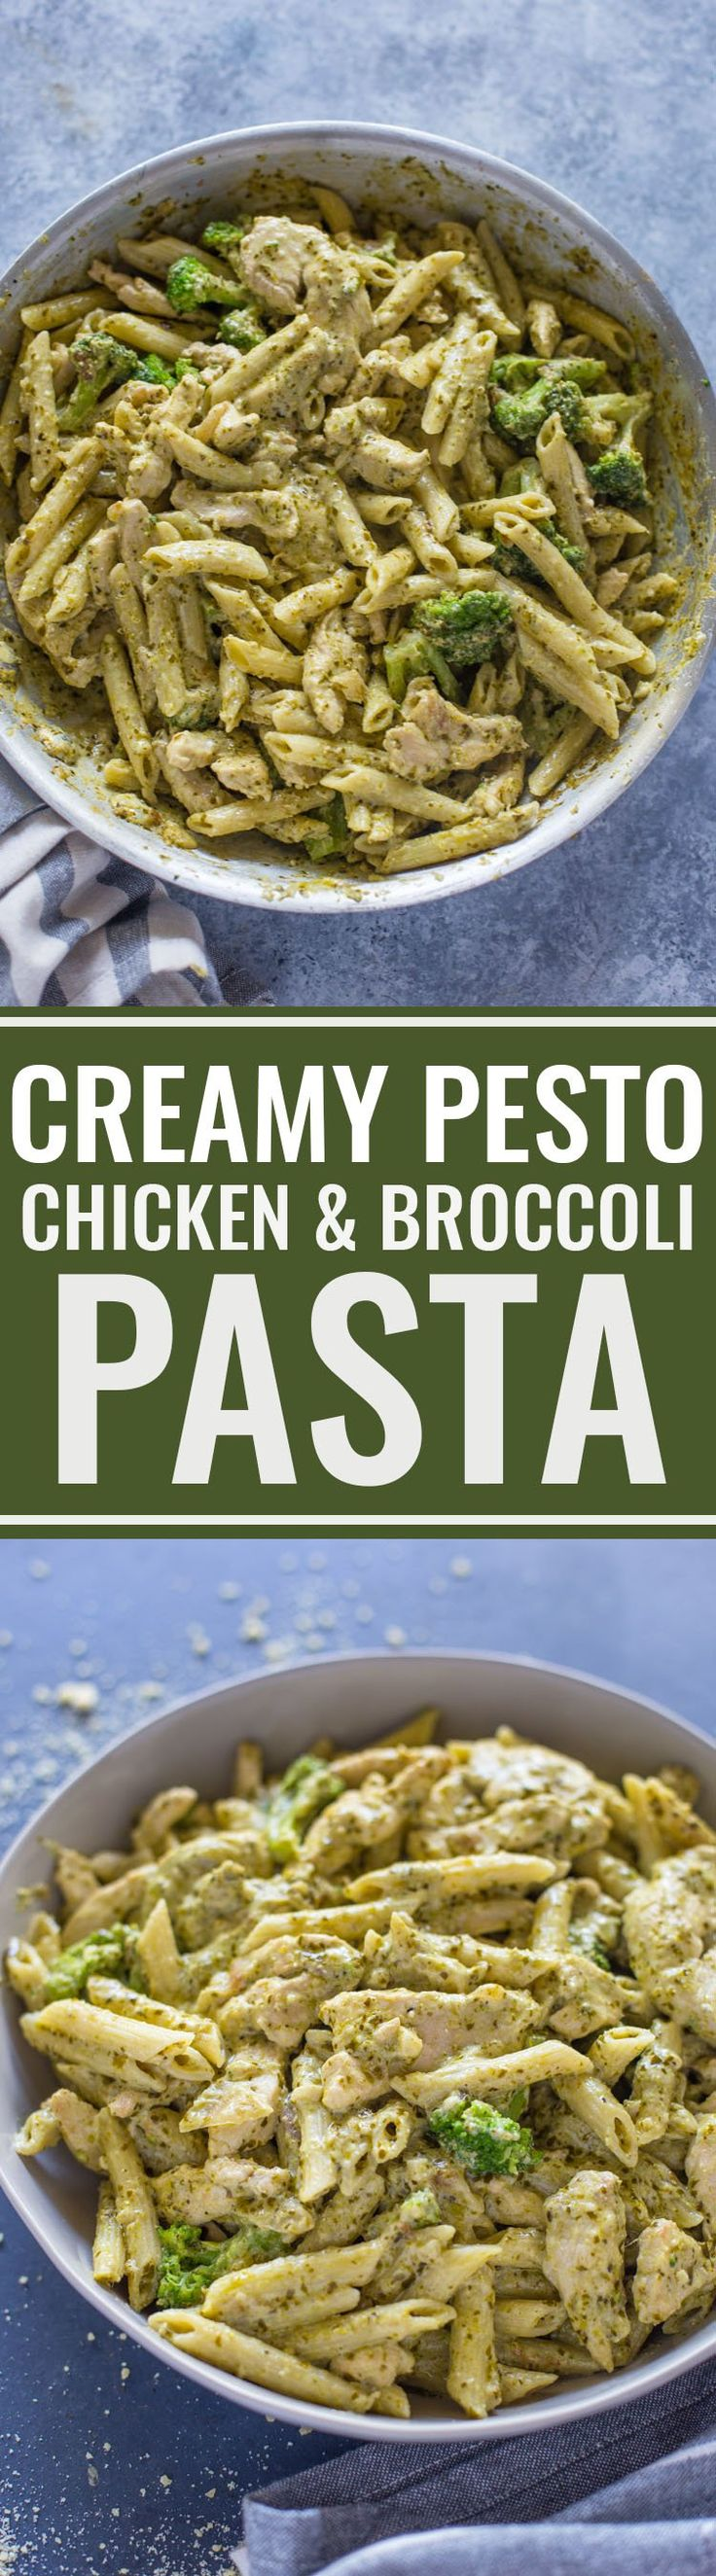 Easy Pesto Chicken and Broccoli Pasta